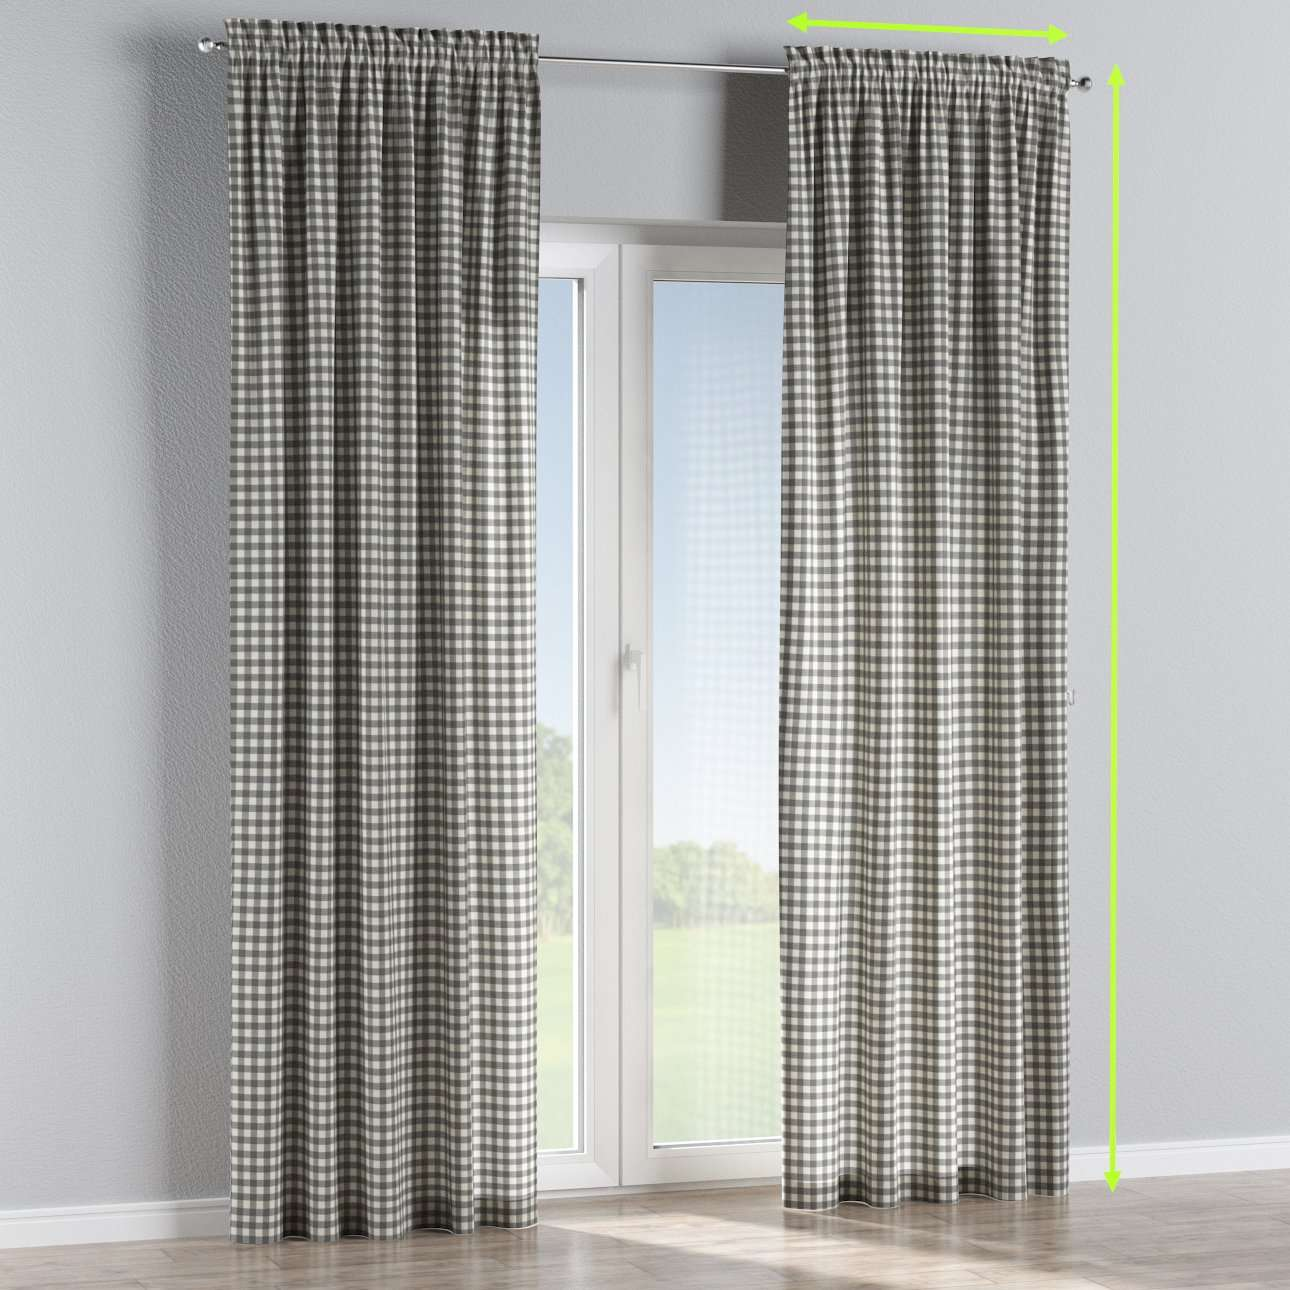 Slot and frill curtains in collection Quadro, fabric: 136-11